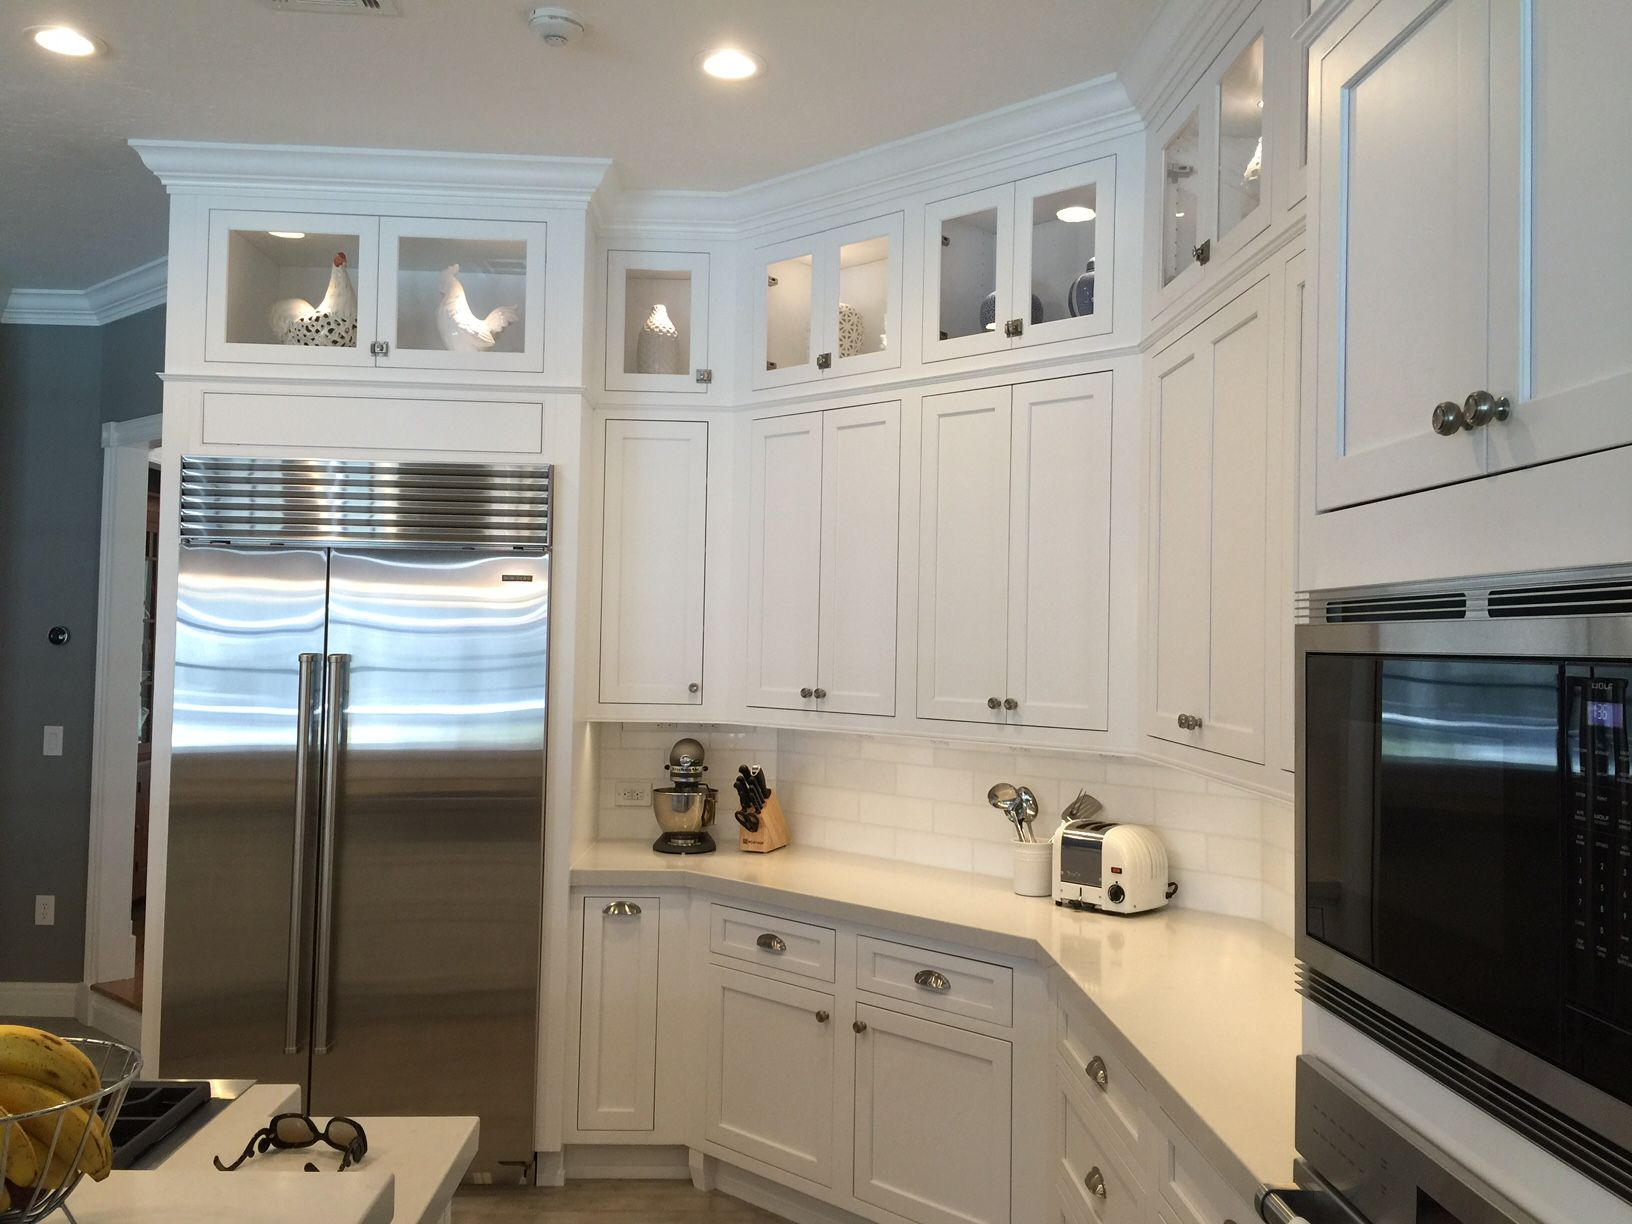 Carolyn Burrell of Today's Builders took a small kitchen in Sarasota, Florida, and turned it into a spacious space. She specified Fieldstone Cabinetry's Delhi inset door style in Maple finished in White. Modern touches include a large stainless steel range and matching wire pendant lights over the island. Additional accents include glass front cabinet doors, tapered feet on the sink cabinet and corbels on the island. Today's Builders is a Fieldstone Cabinetry dealer in Sarasota, Florida.